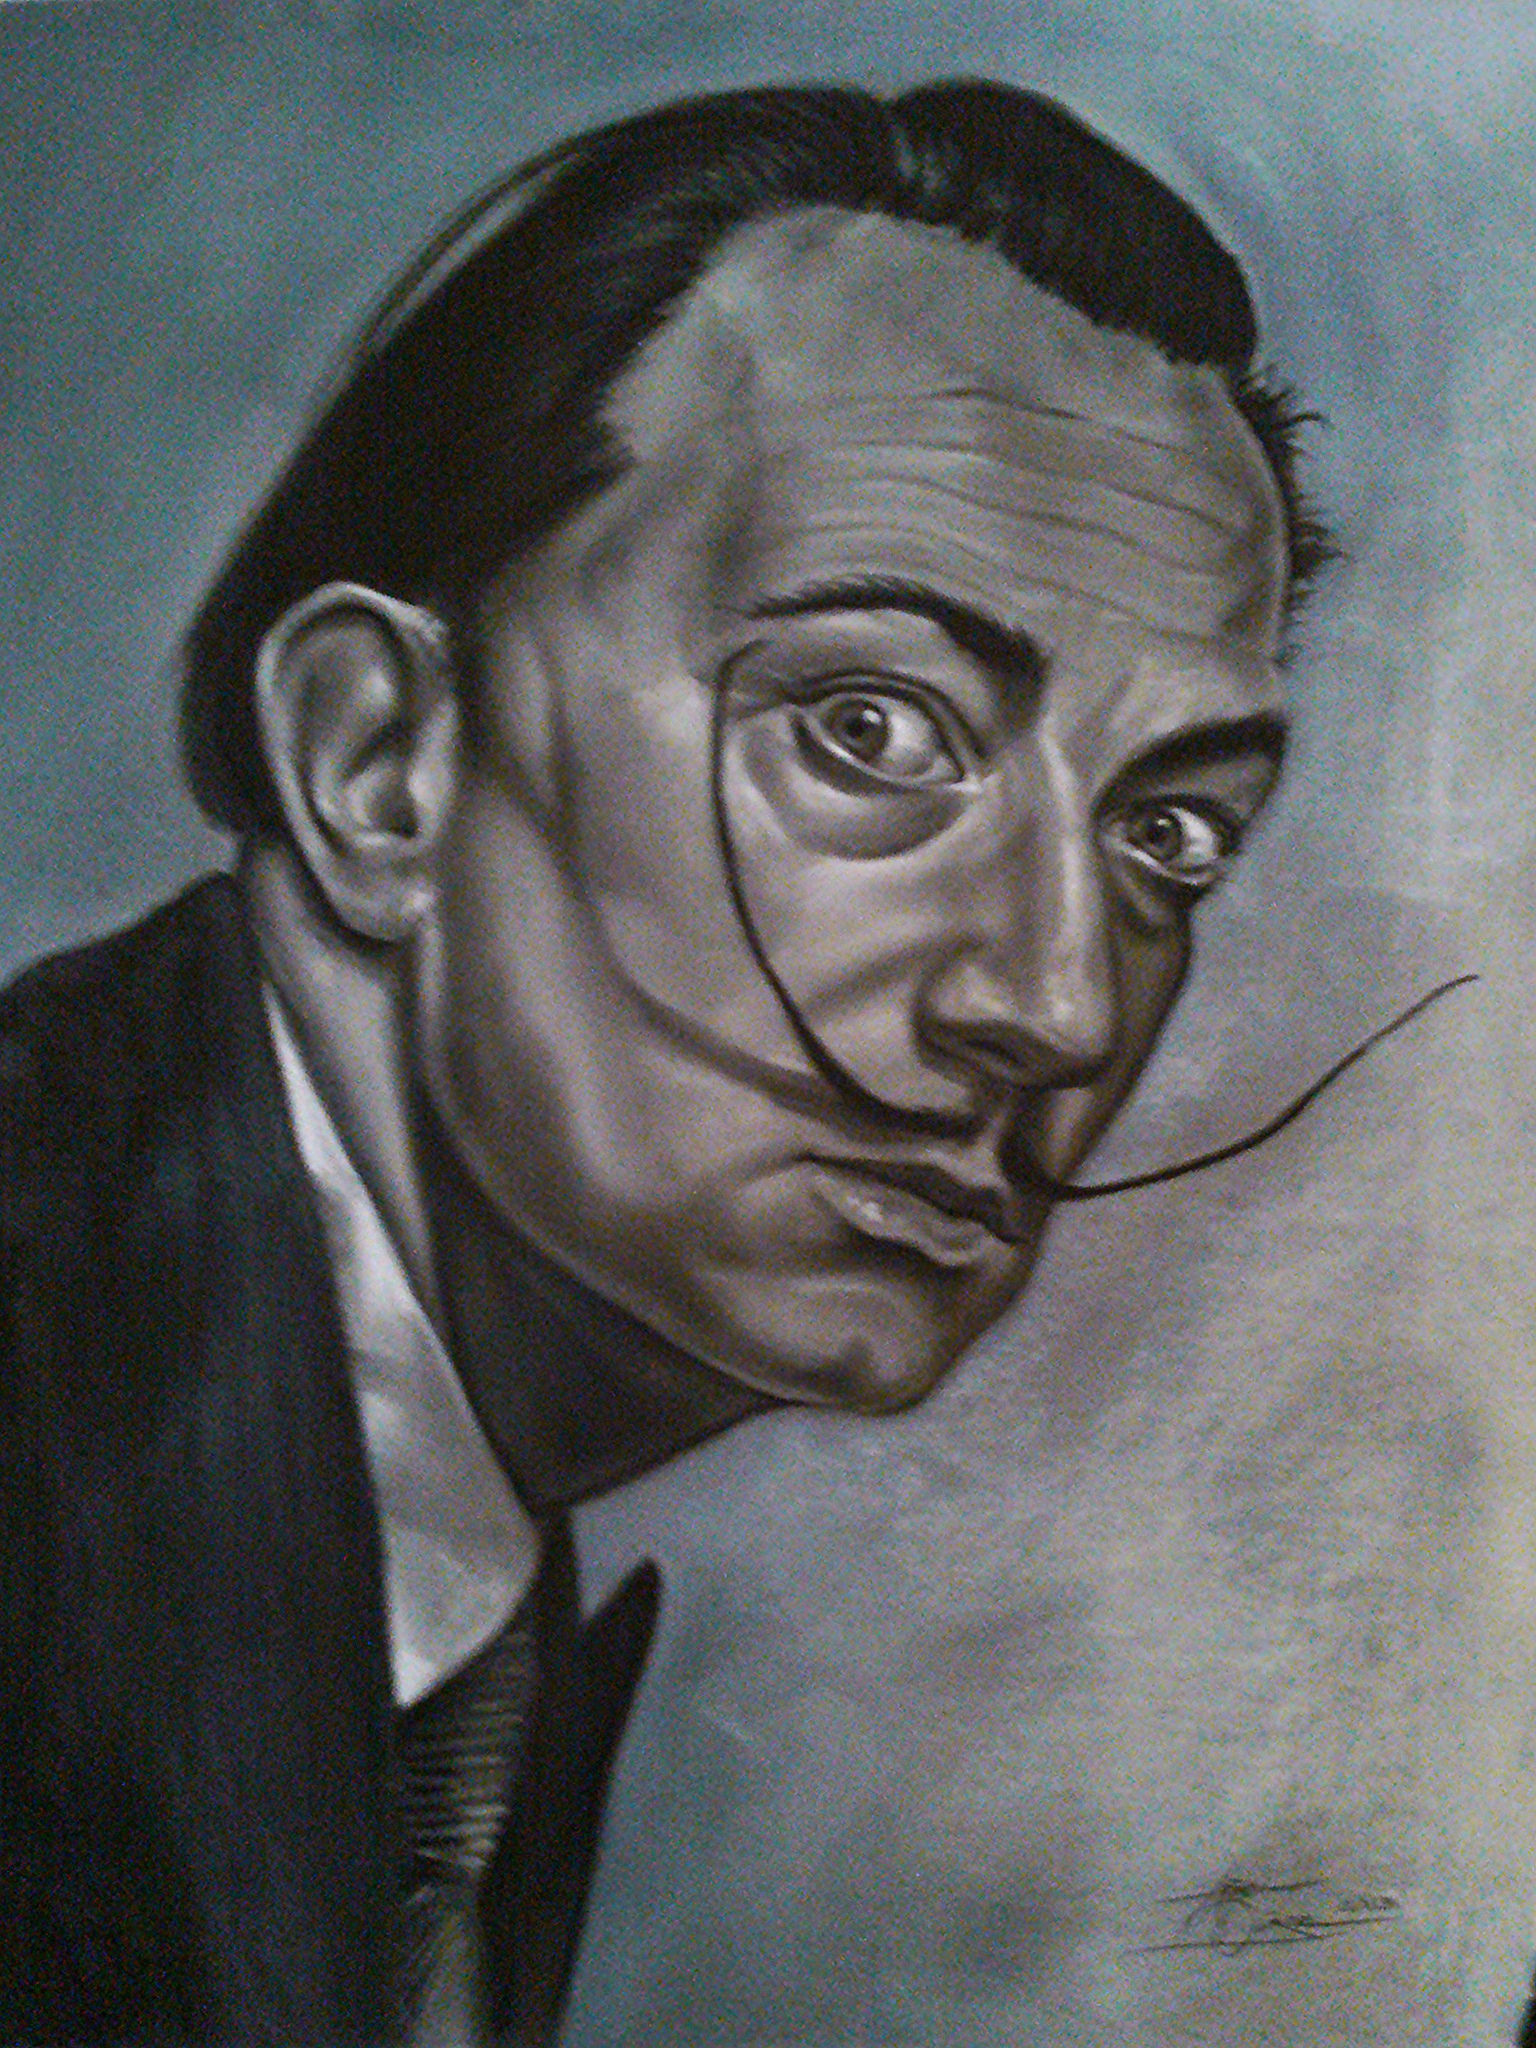 a biography of salvador dali a spanish painter Salvador dali(1904 - 1989) was a spanish painter who is best known for his surrealistic work dali's paintings are highly imaginative, always showing something.